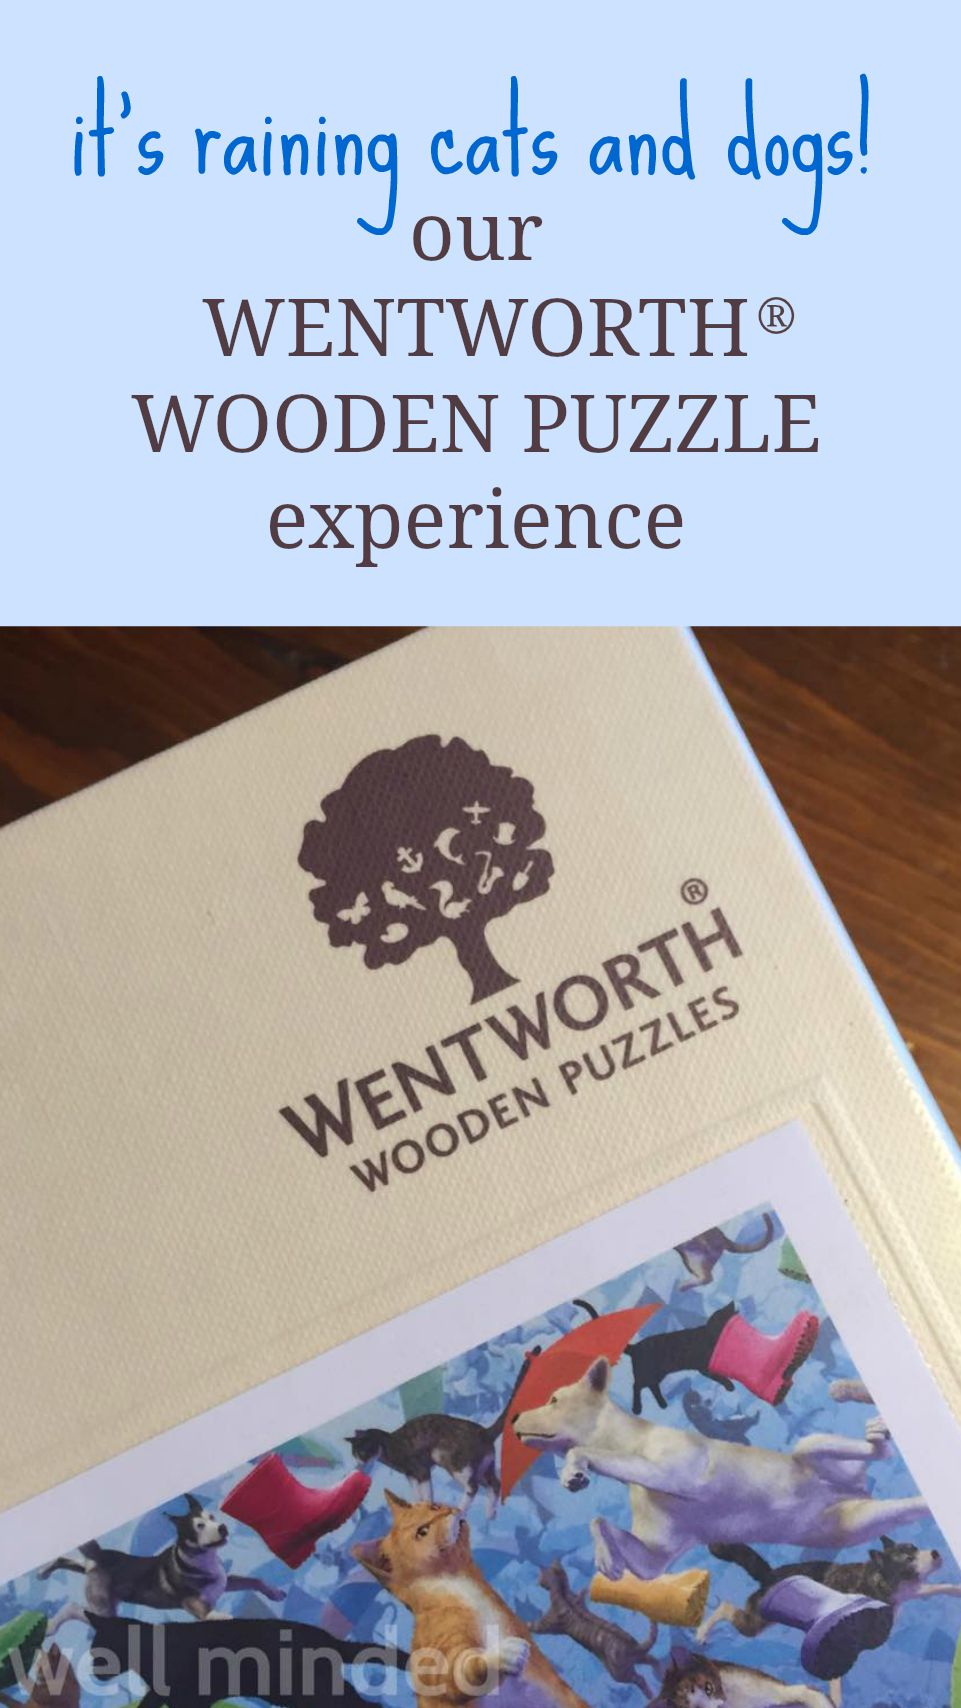 It's raining cats and dogs! Our Wentworth® Wooden Puzzle experience.